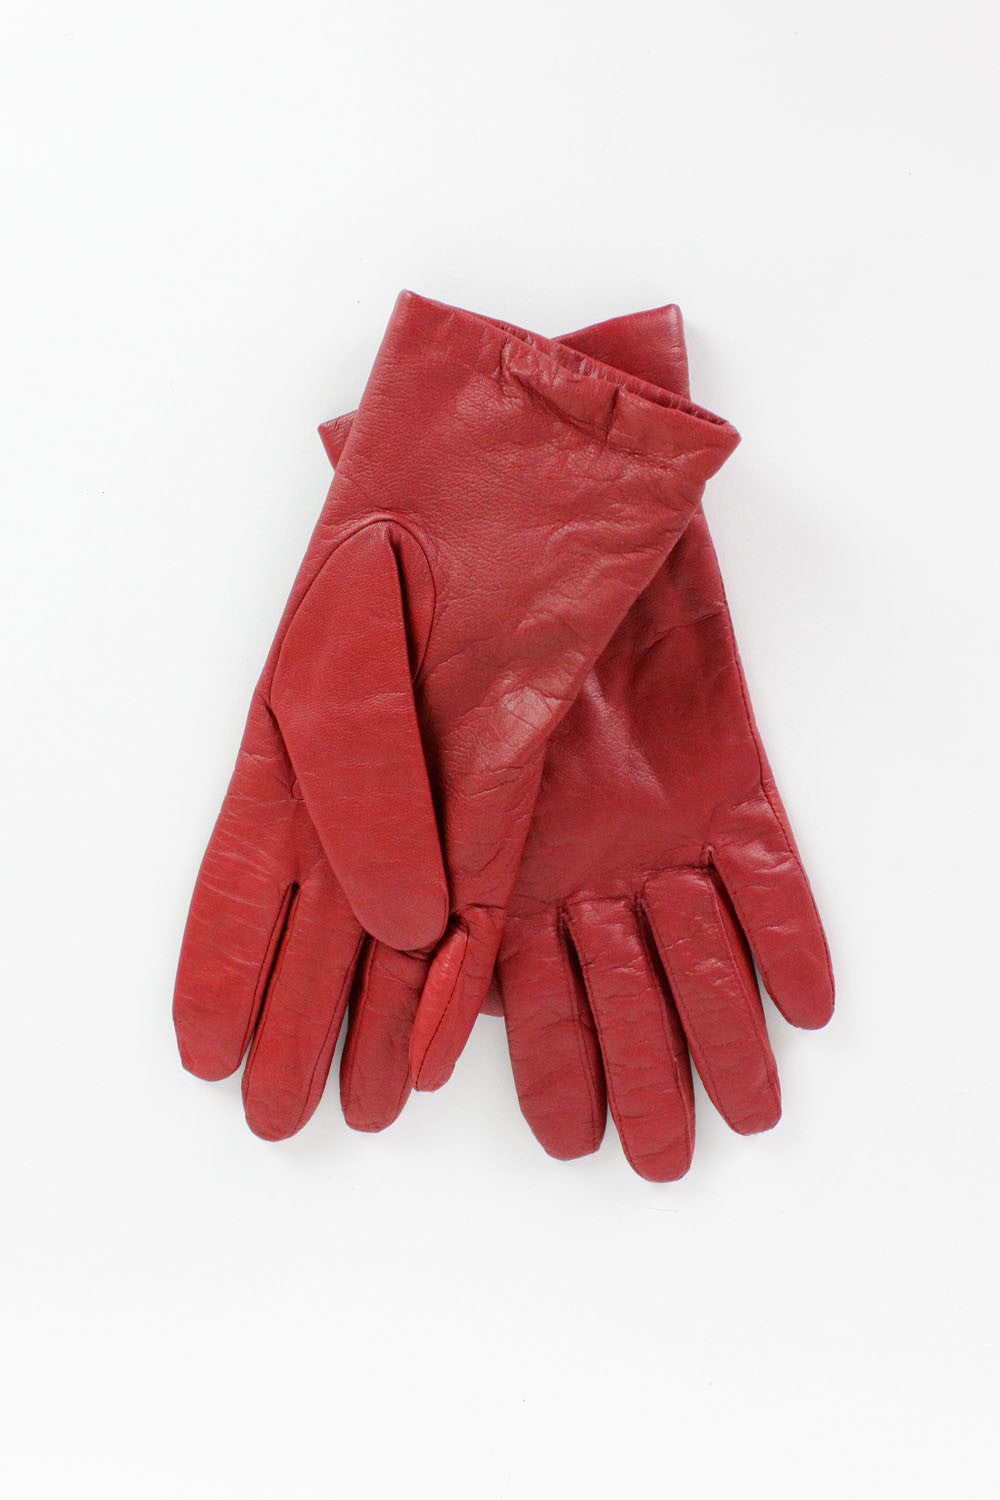 SALE... Cranberry Red Leather Gloves M